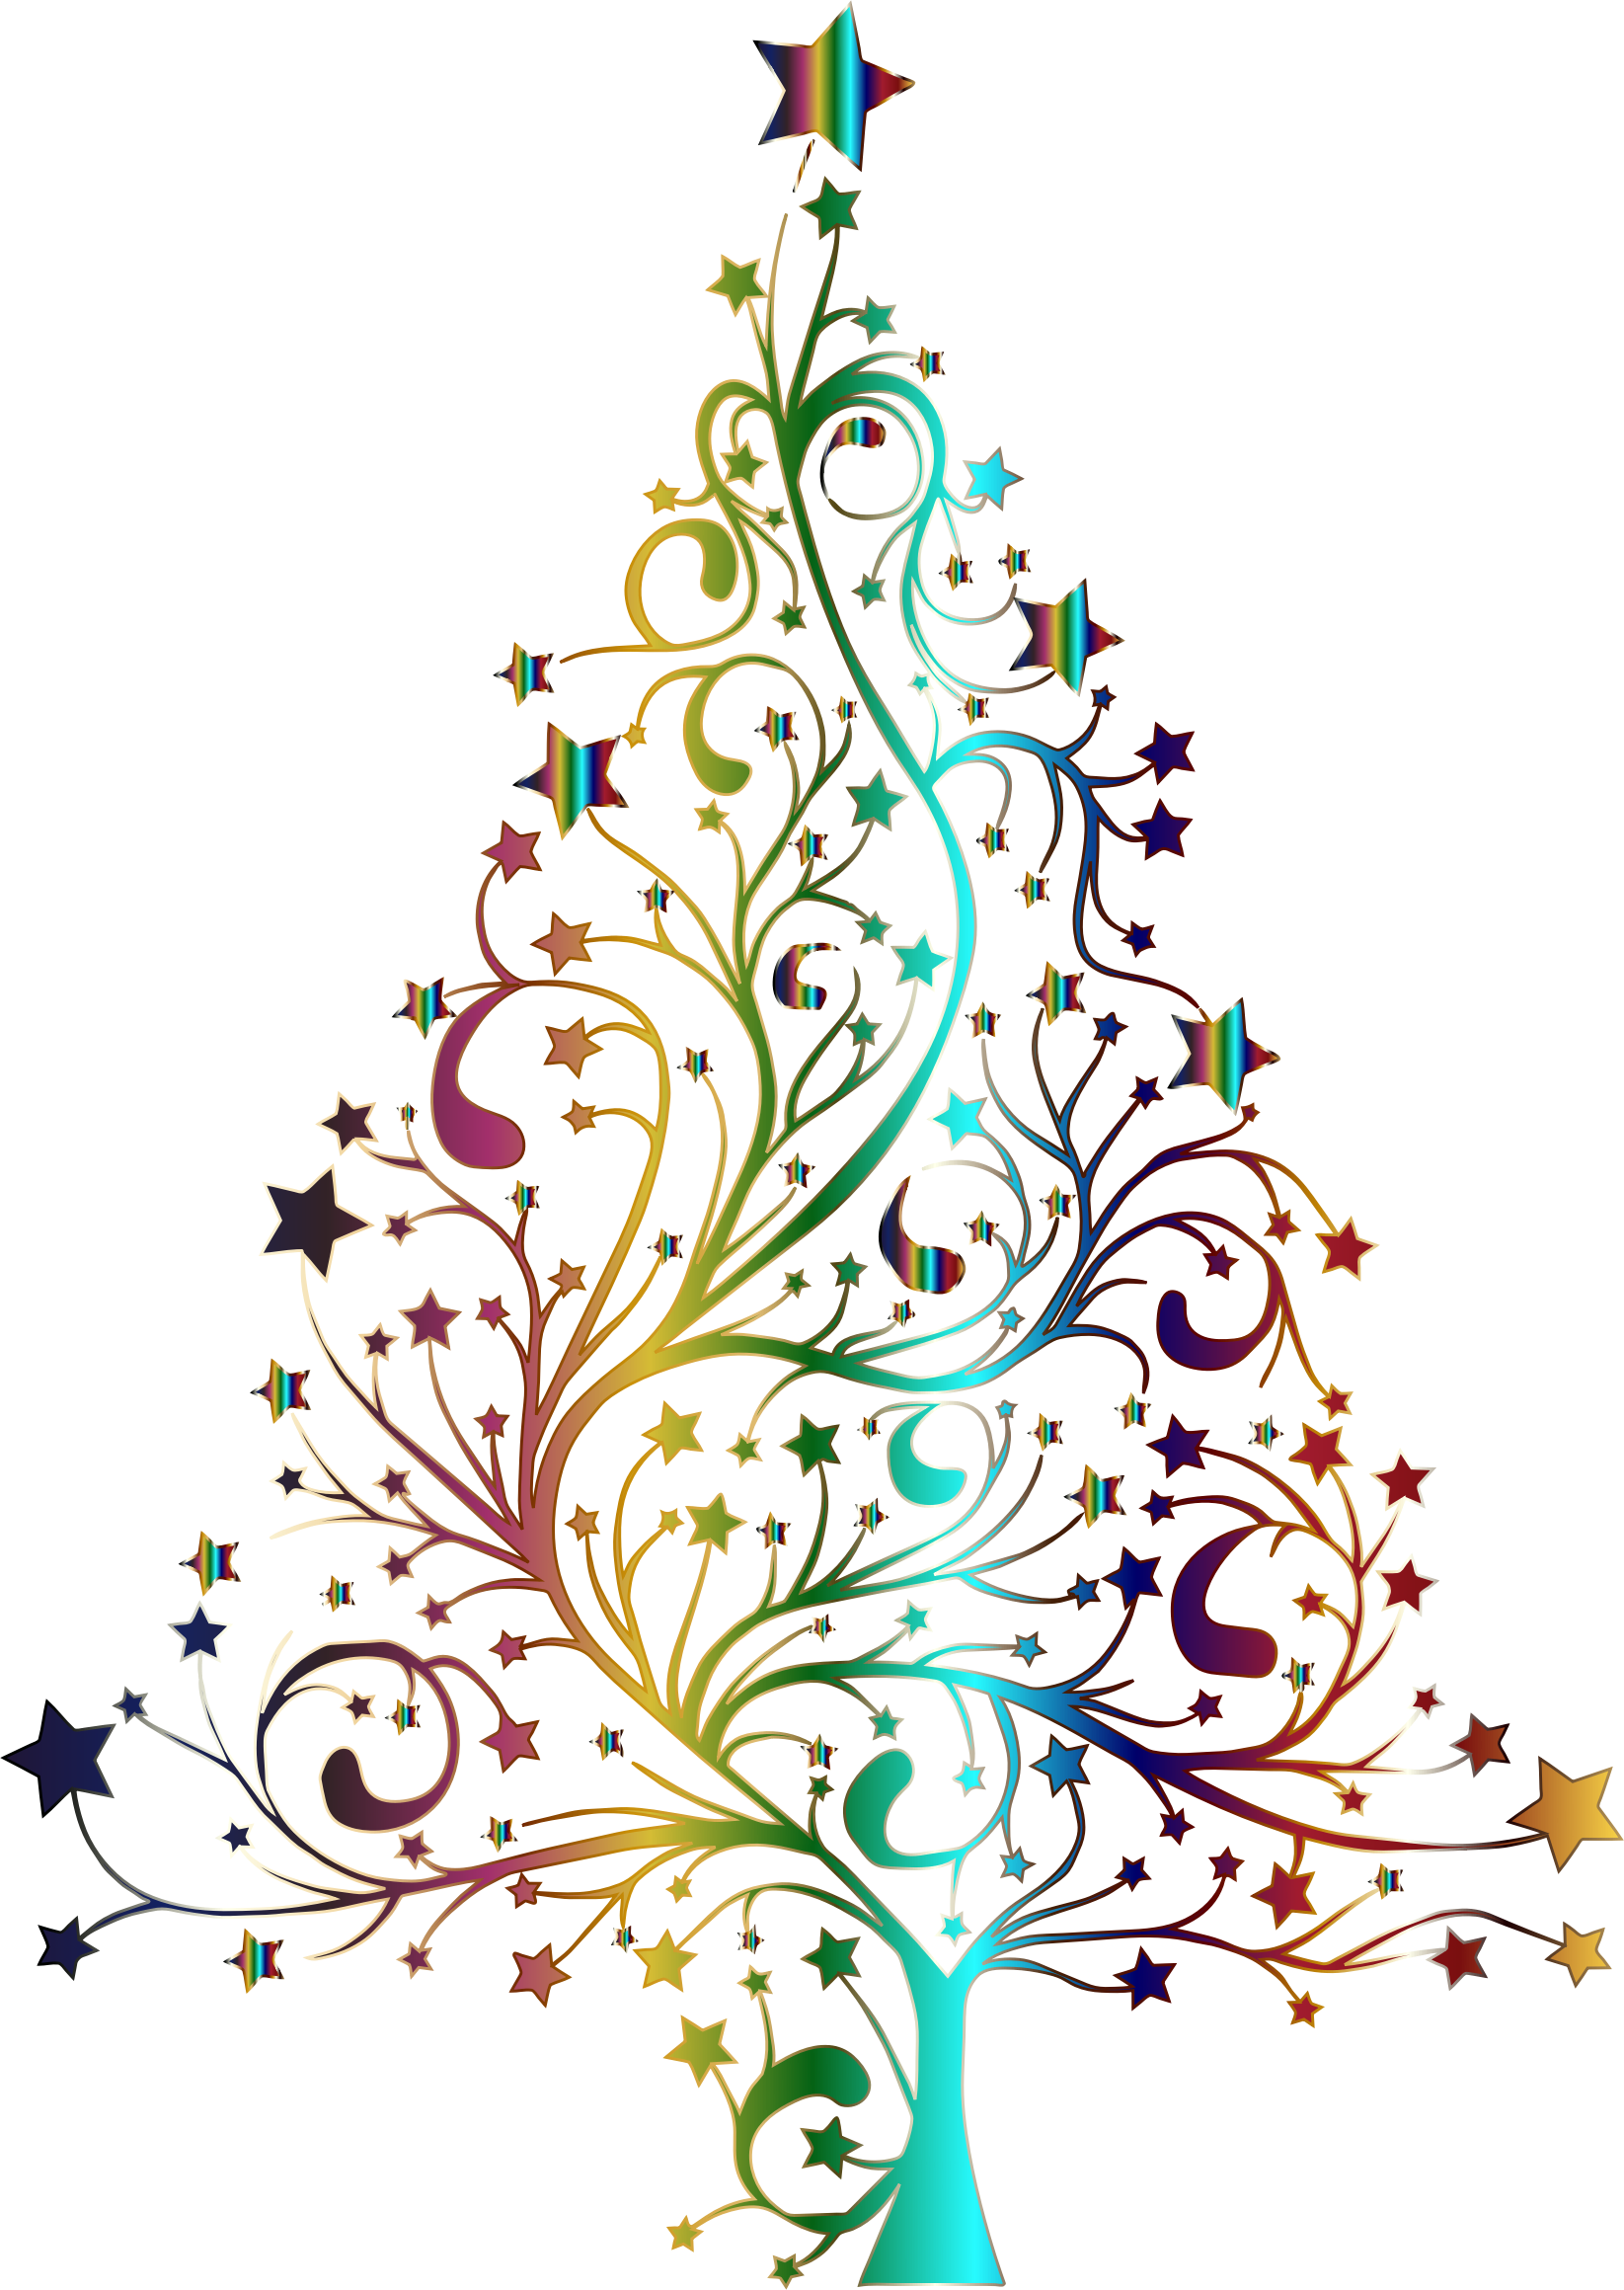 Christmas tree clipart no background 6 » Clipart Station.